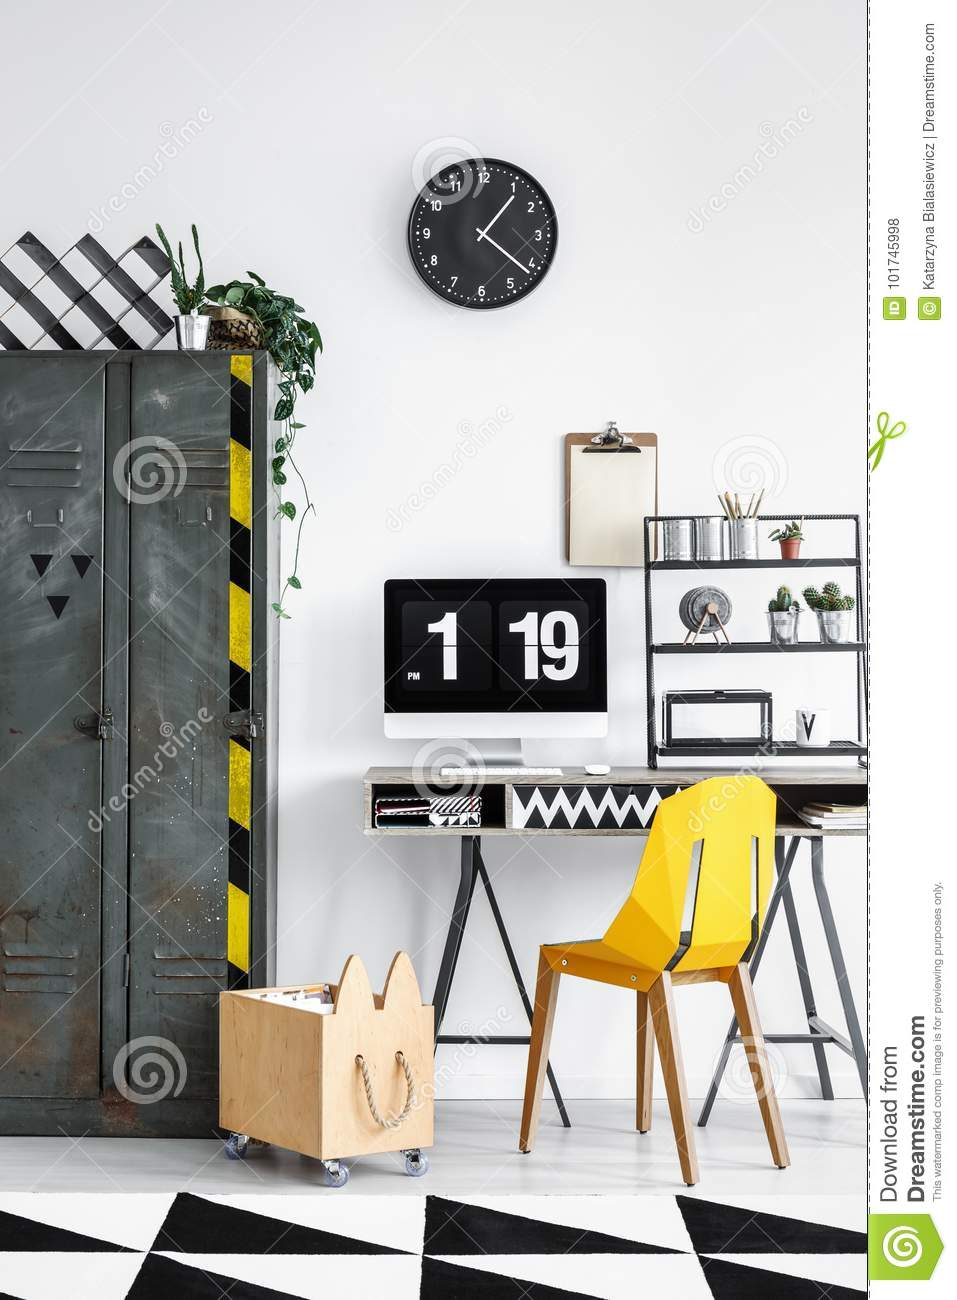 Designer Home Office Interior Stock Photo - Image of house ...